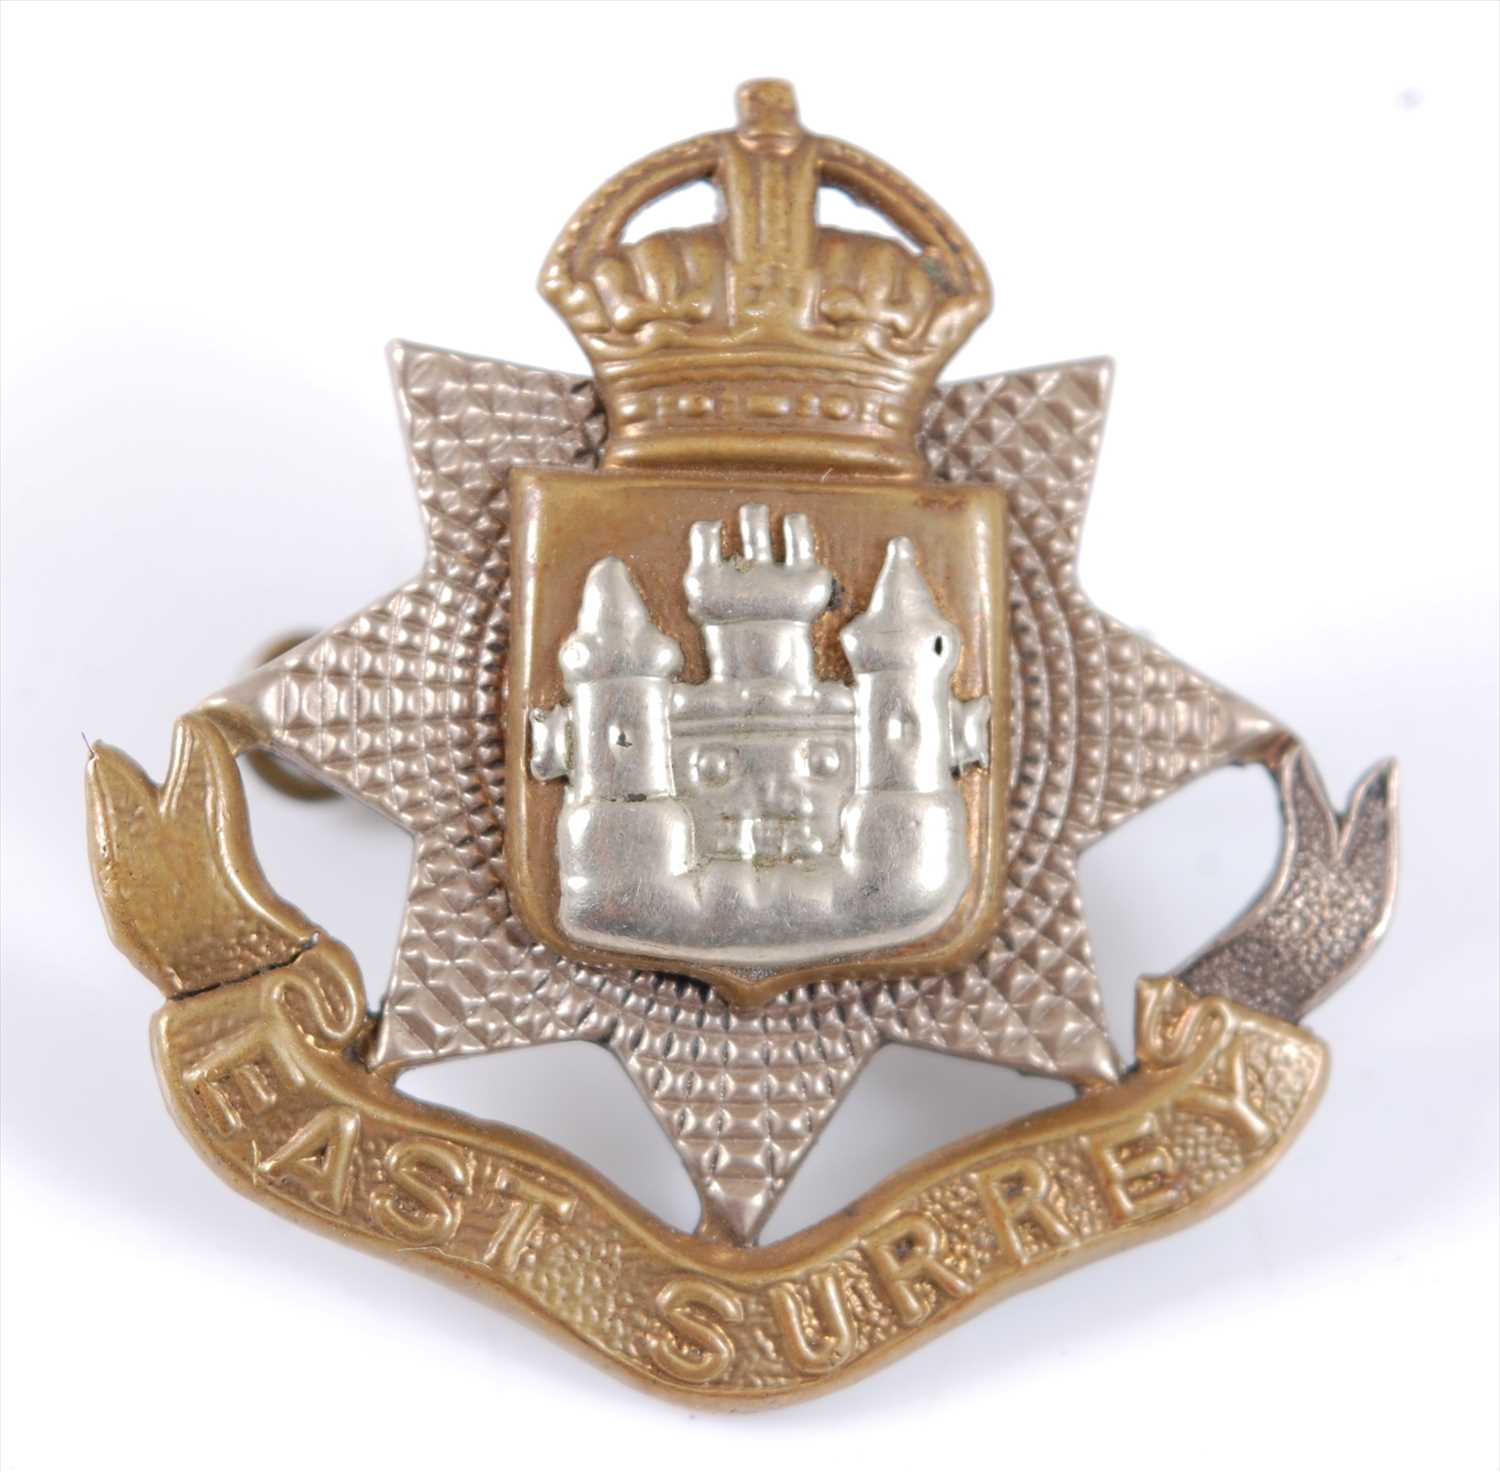 Lot 25 - An East Surrey Regiment Officer's white metal and gilt cap badge